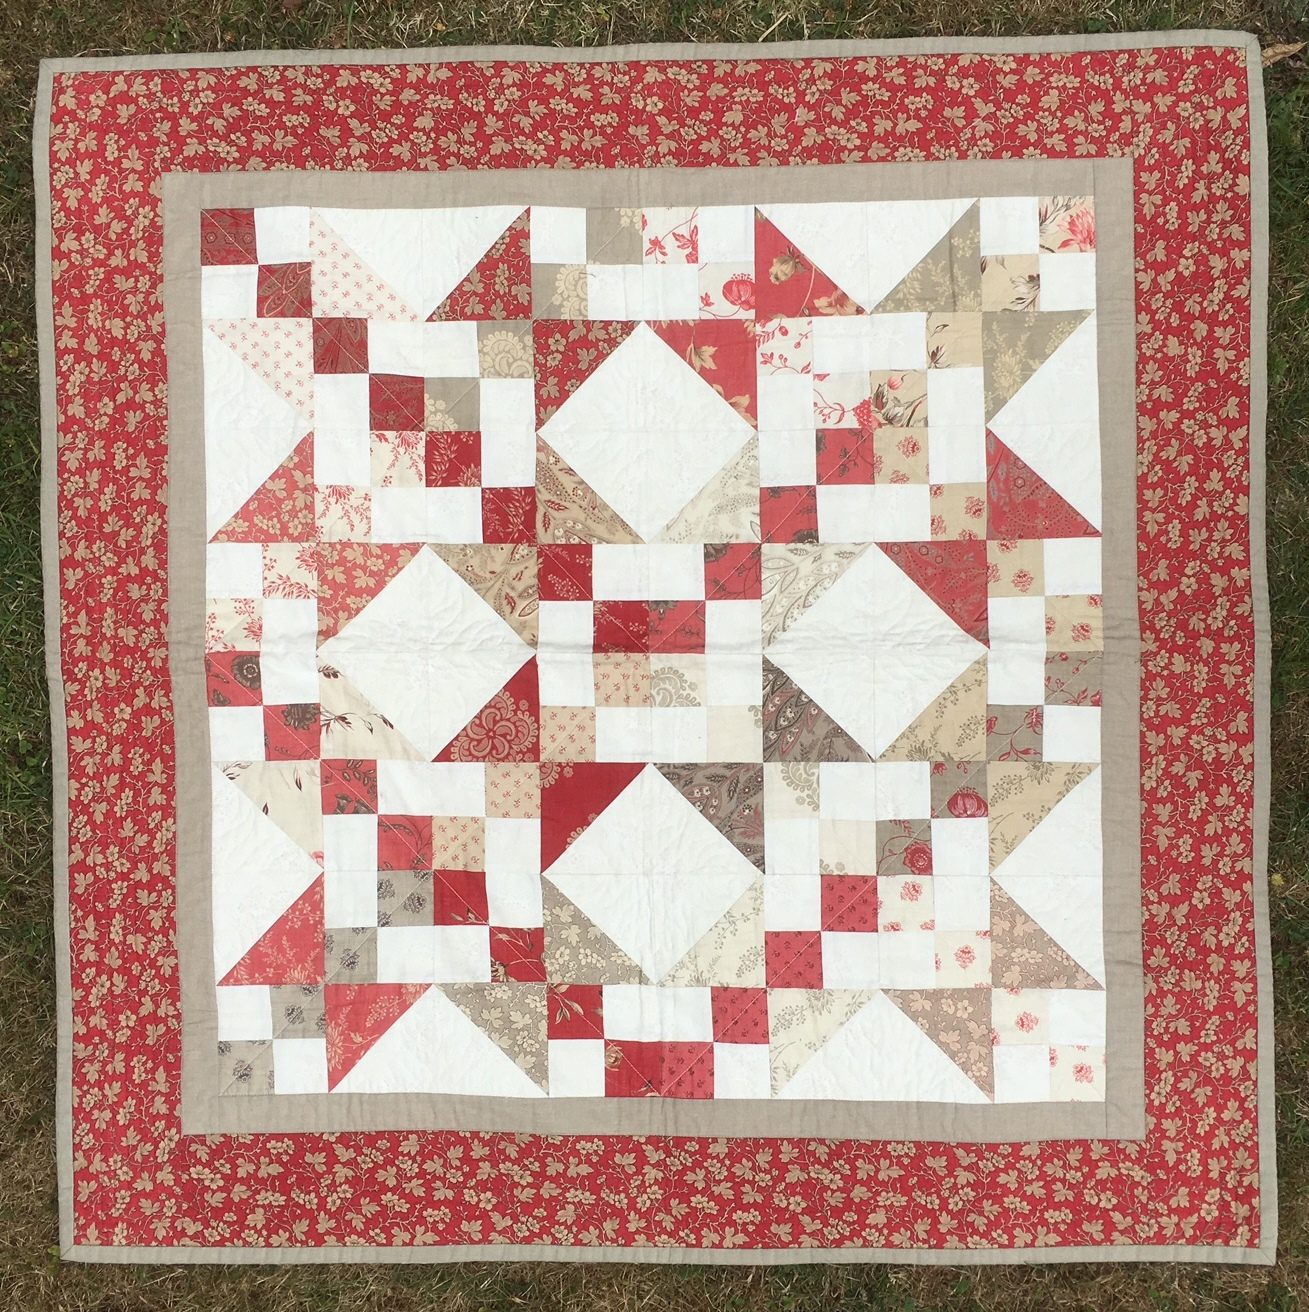 Janet quilt 5 cropped.jpg